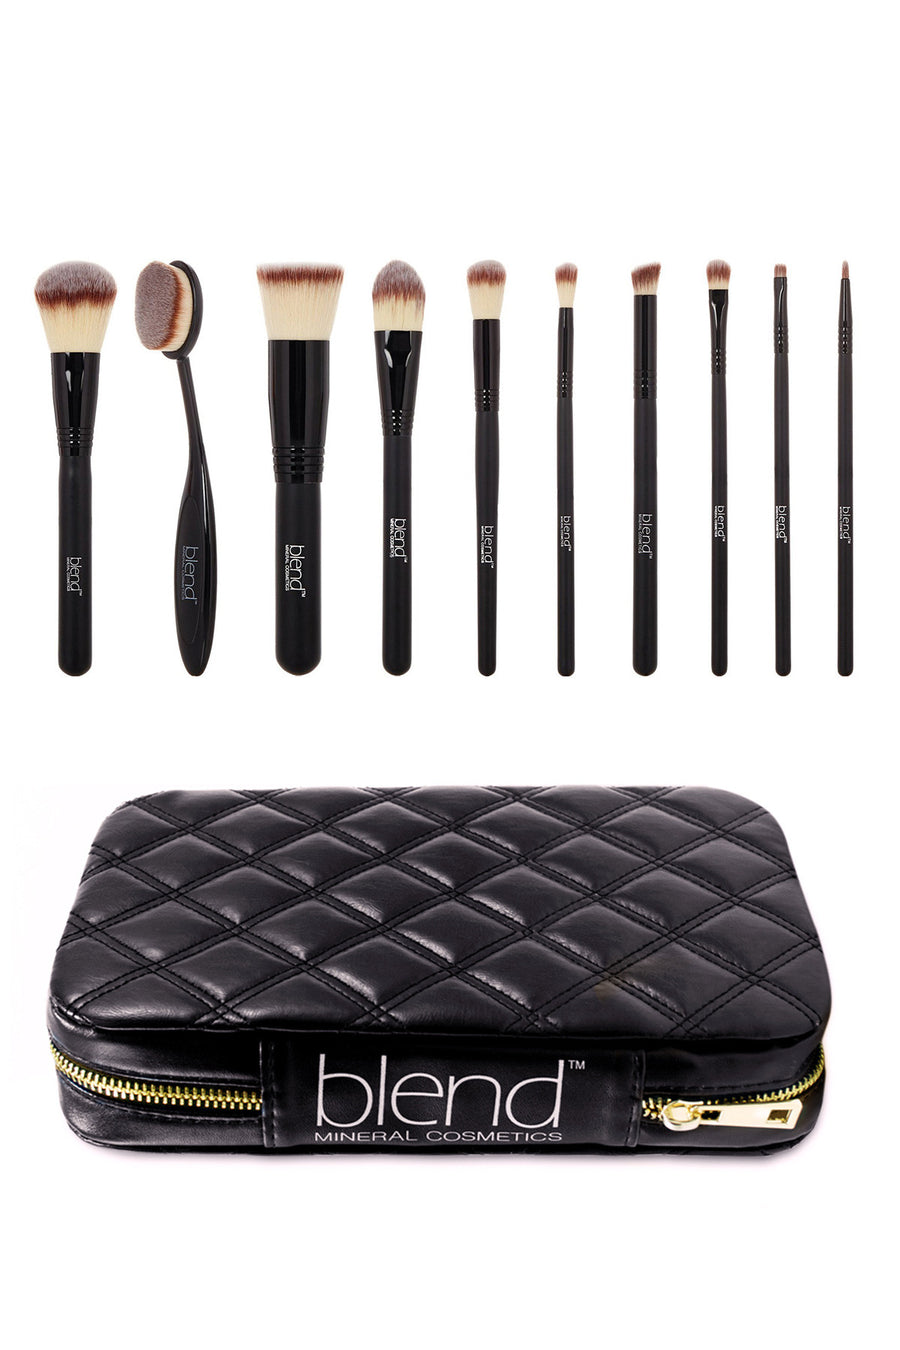 Professional Makeup Artist Complete 11-Piece Brush Kit - Mixed Brown - Blend Mineral Cosmetics